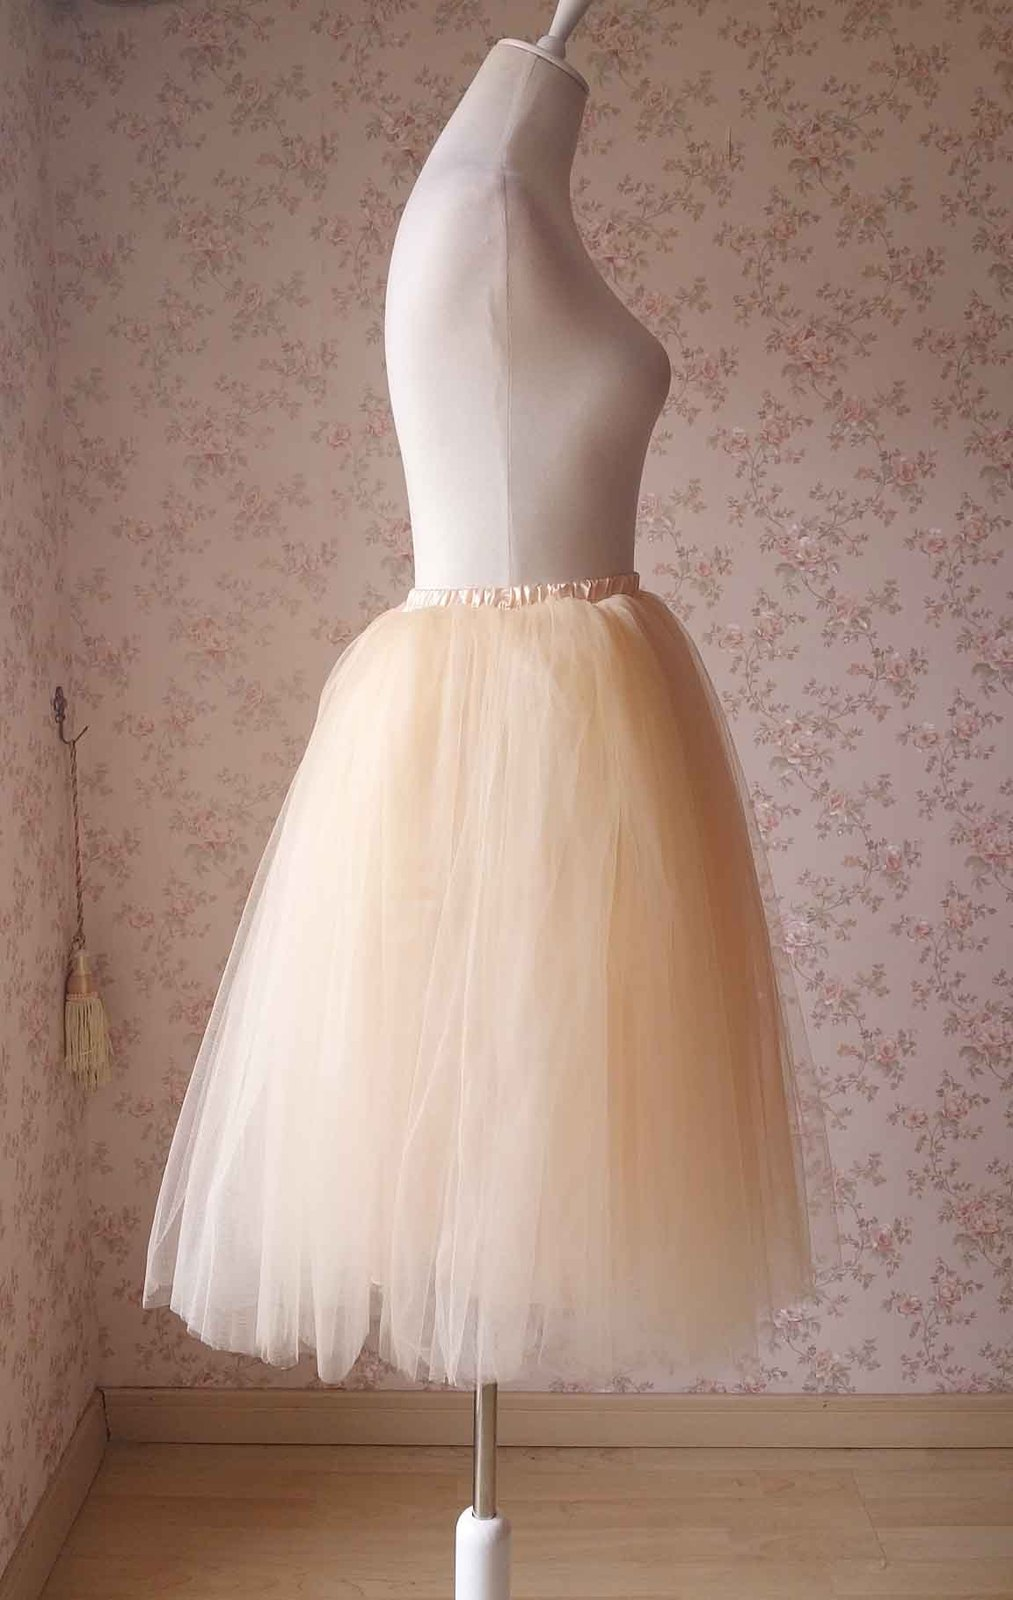 Apricot Tulle Skirt Ladies Ball Skirt Fashion Long Petticoat